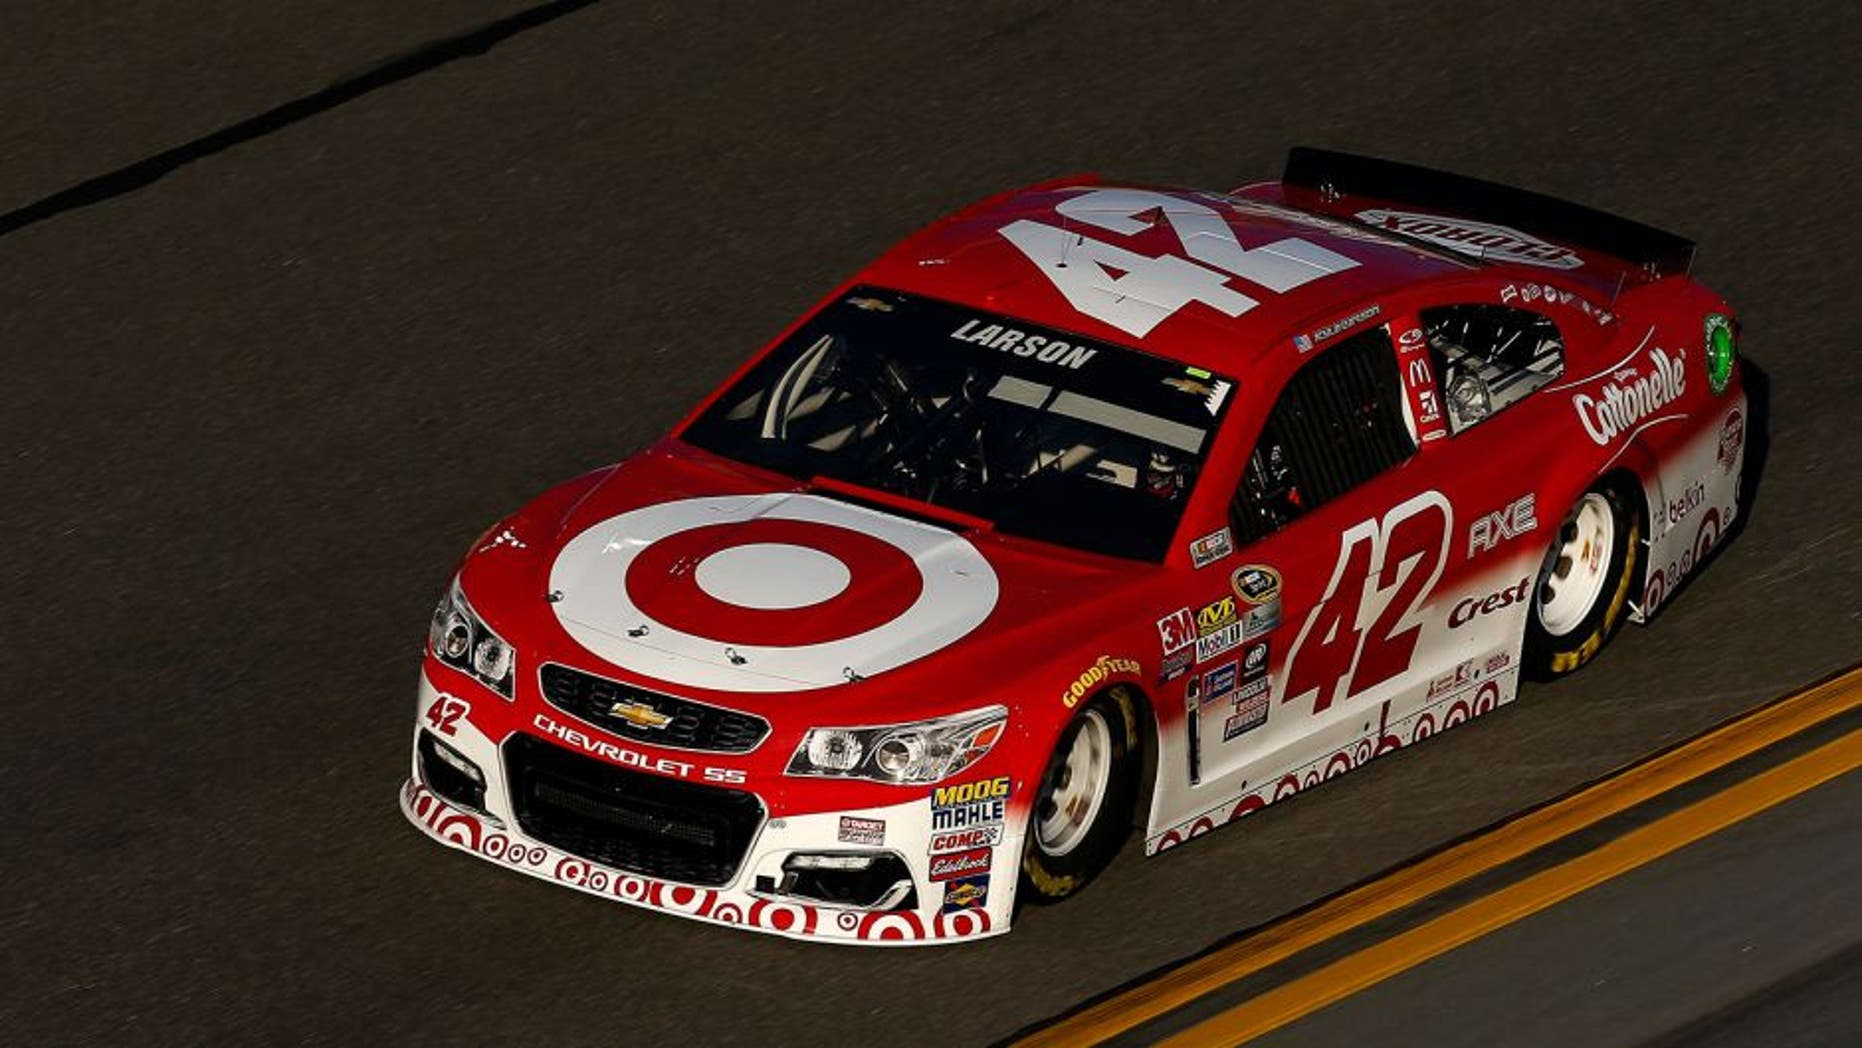 DAYTONA BEACH, FL - FEBRUARY 12: Kyle Larson, driver of the #42 Target Chevrolet, stands in the garage area during practice for the NASCAR Sprint Cup Series Sprint Unlimited at Daytona International Speedway on February 12, 2016 in Daytona Beach, Florida. (Photo by Jonathan Ferrey/NASCAR via Getty Images)